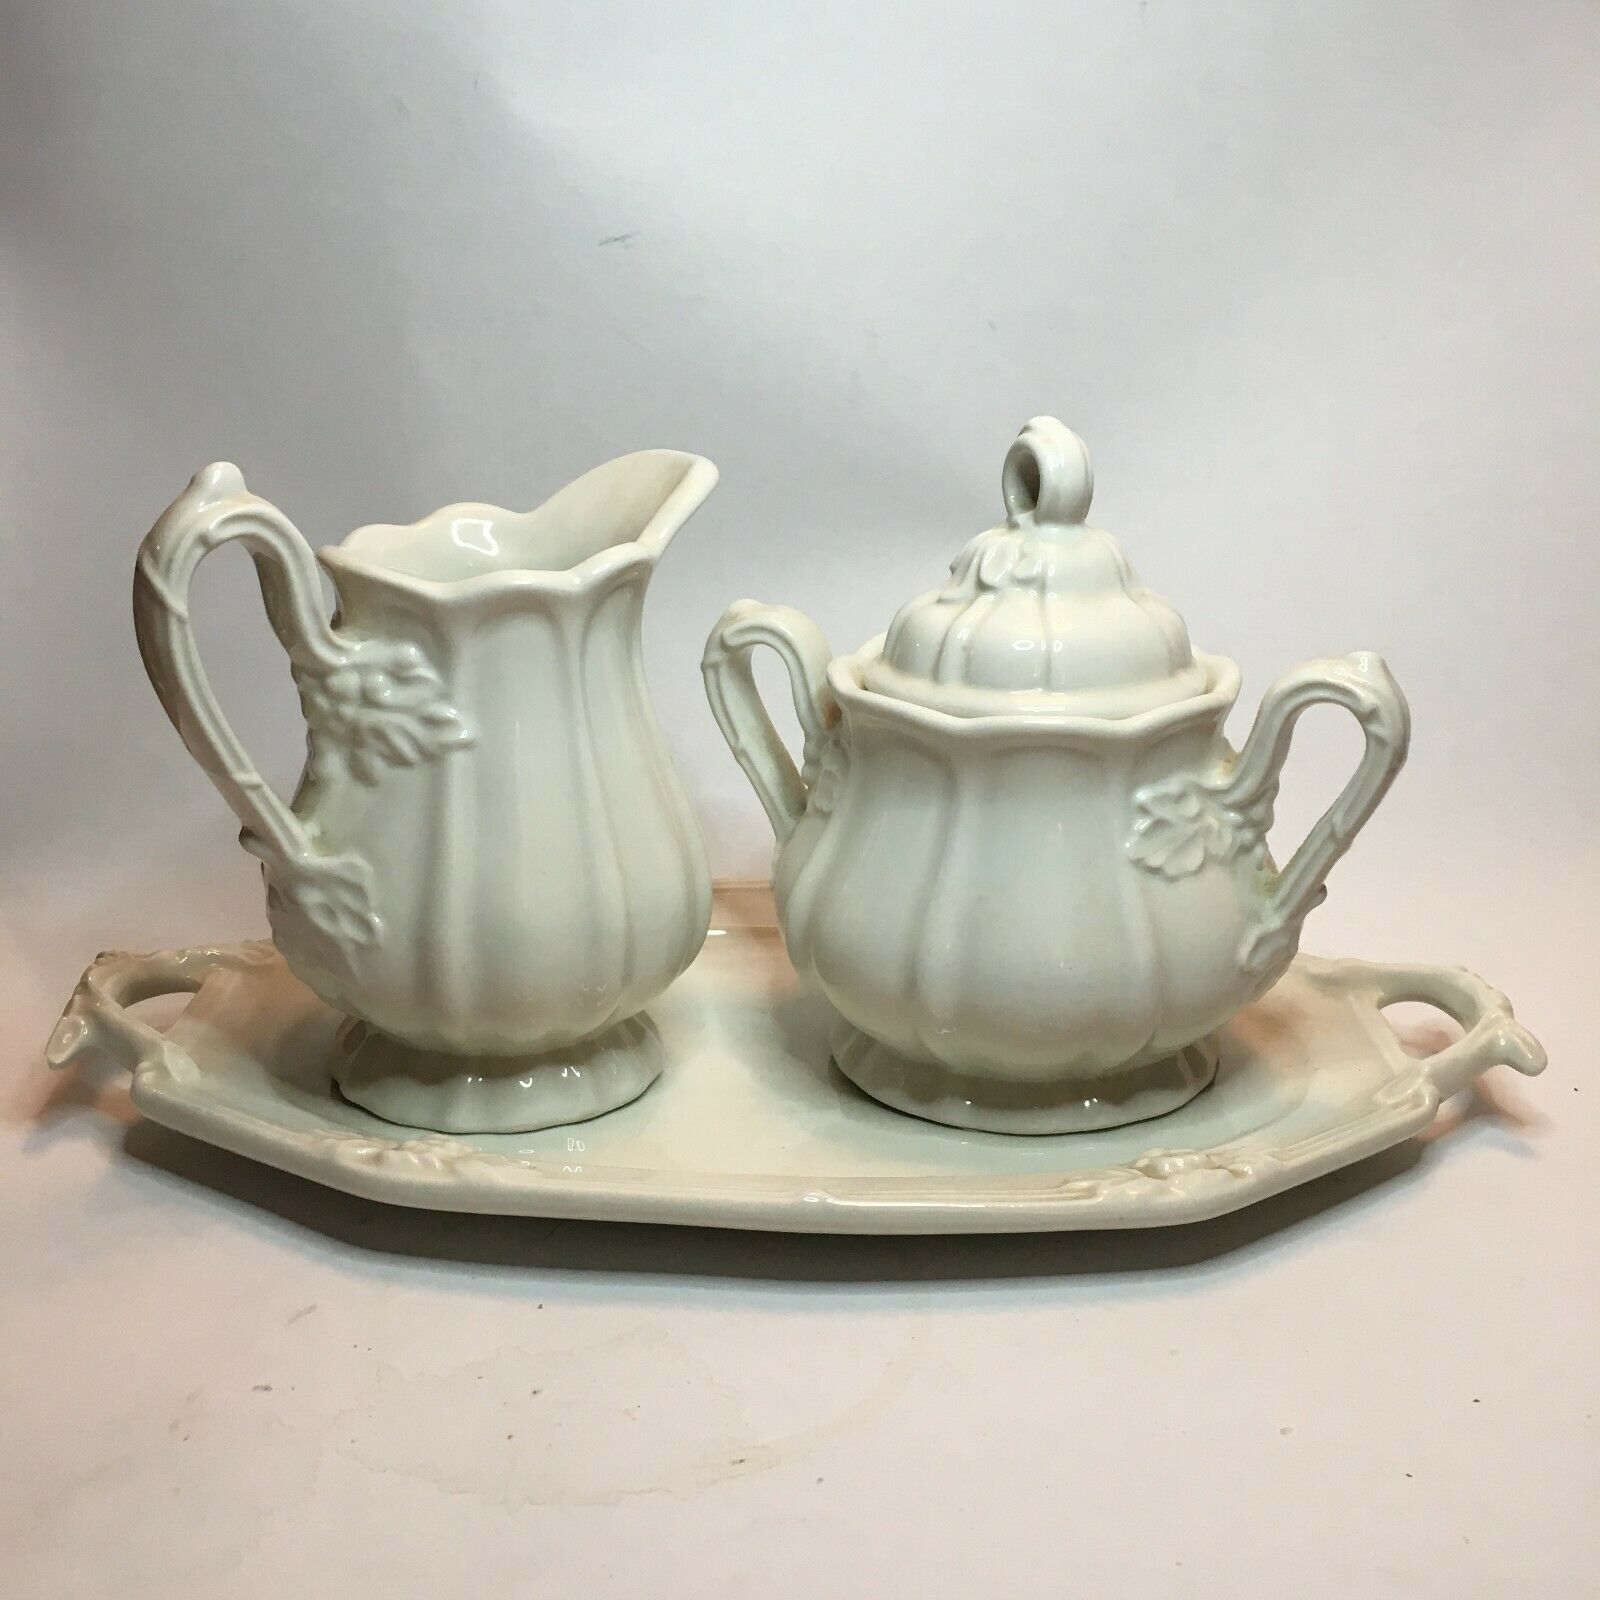 Vintage Red Cliff Ironstone Cream Sugar Tray - $50.00